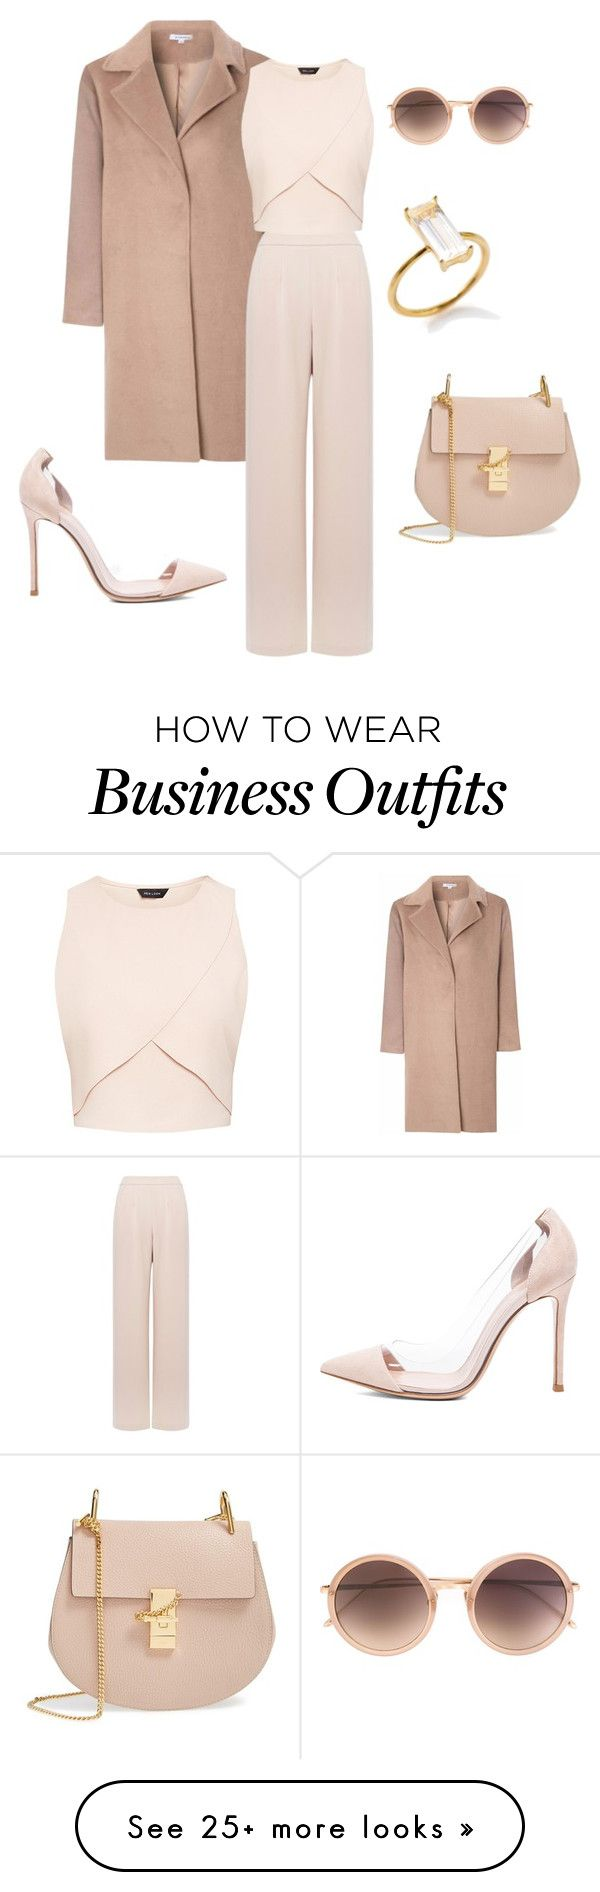 best womenus career fashion looks images on pinterest my style